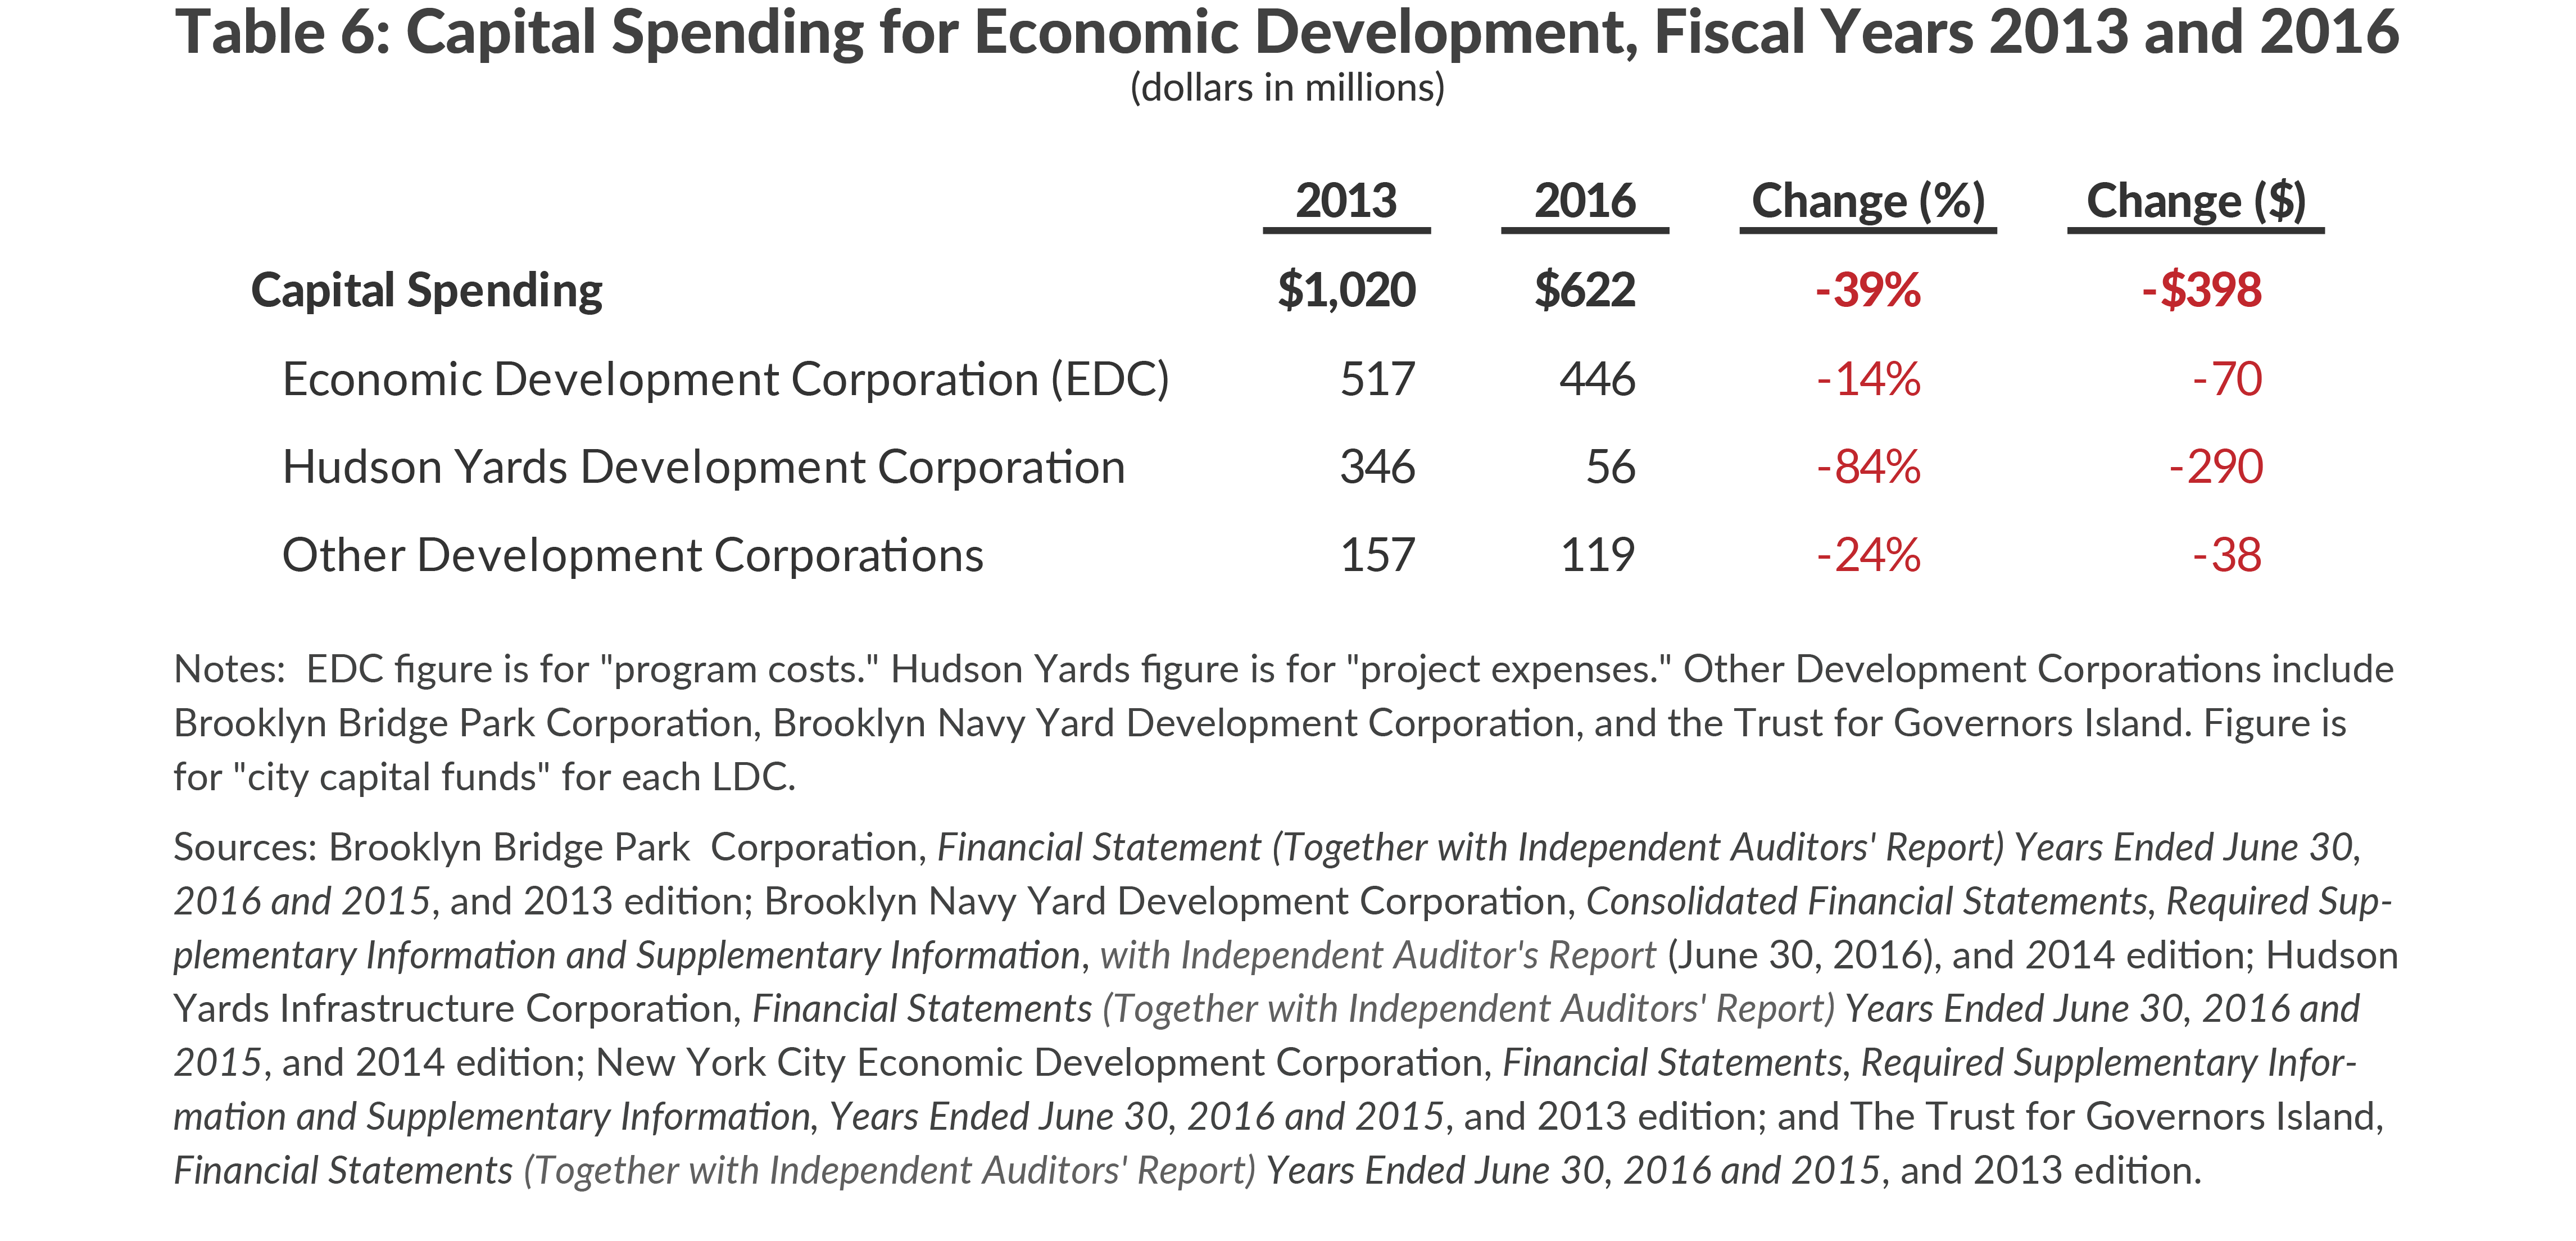 Capital Spending for Economic Development, Fiscal Years 2013 and 2016